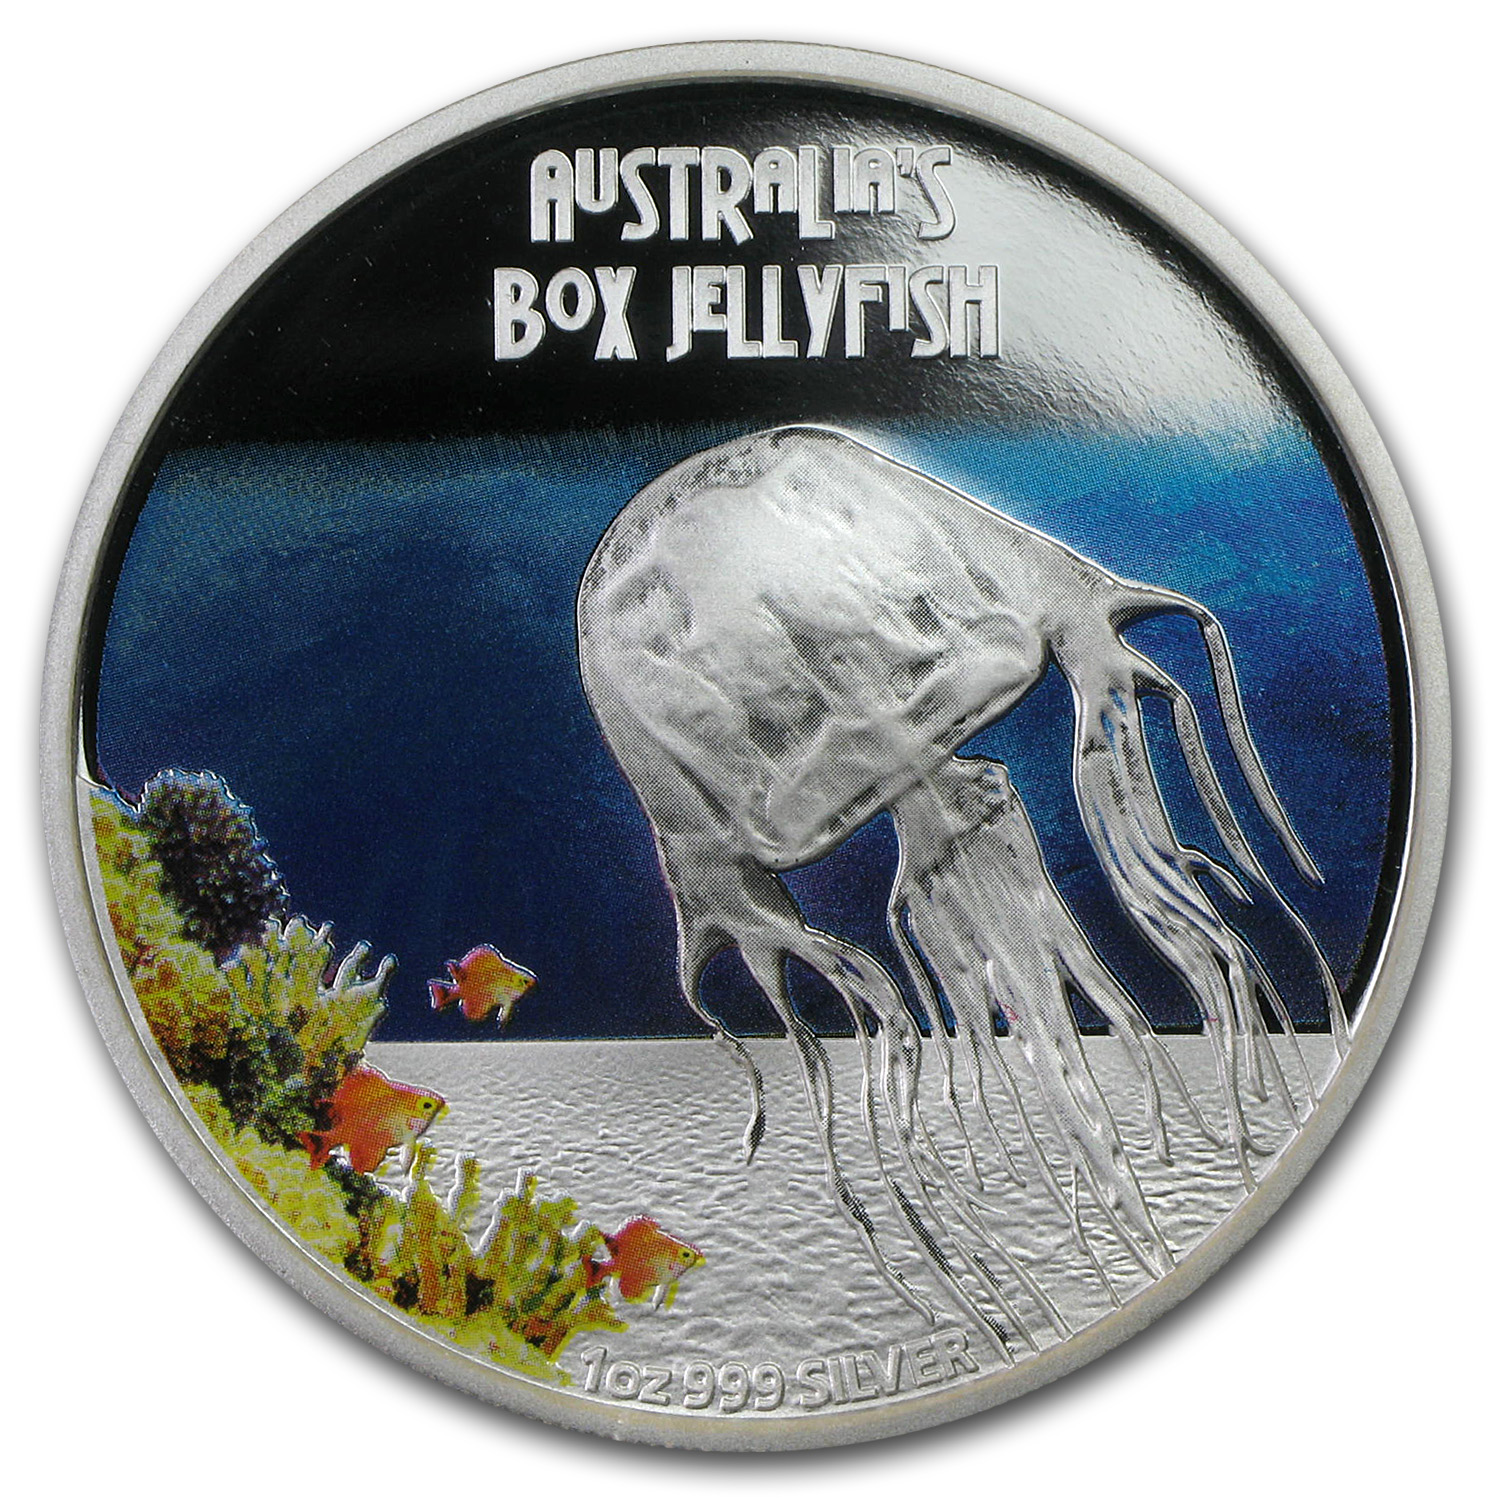 2011 1 oz Silver Australian Box Jellyfish Proof